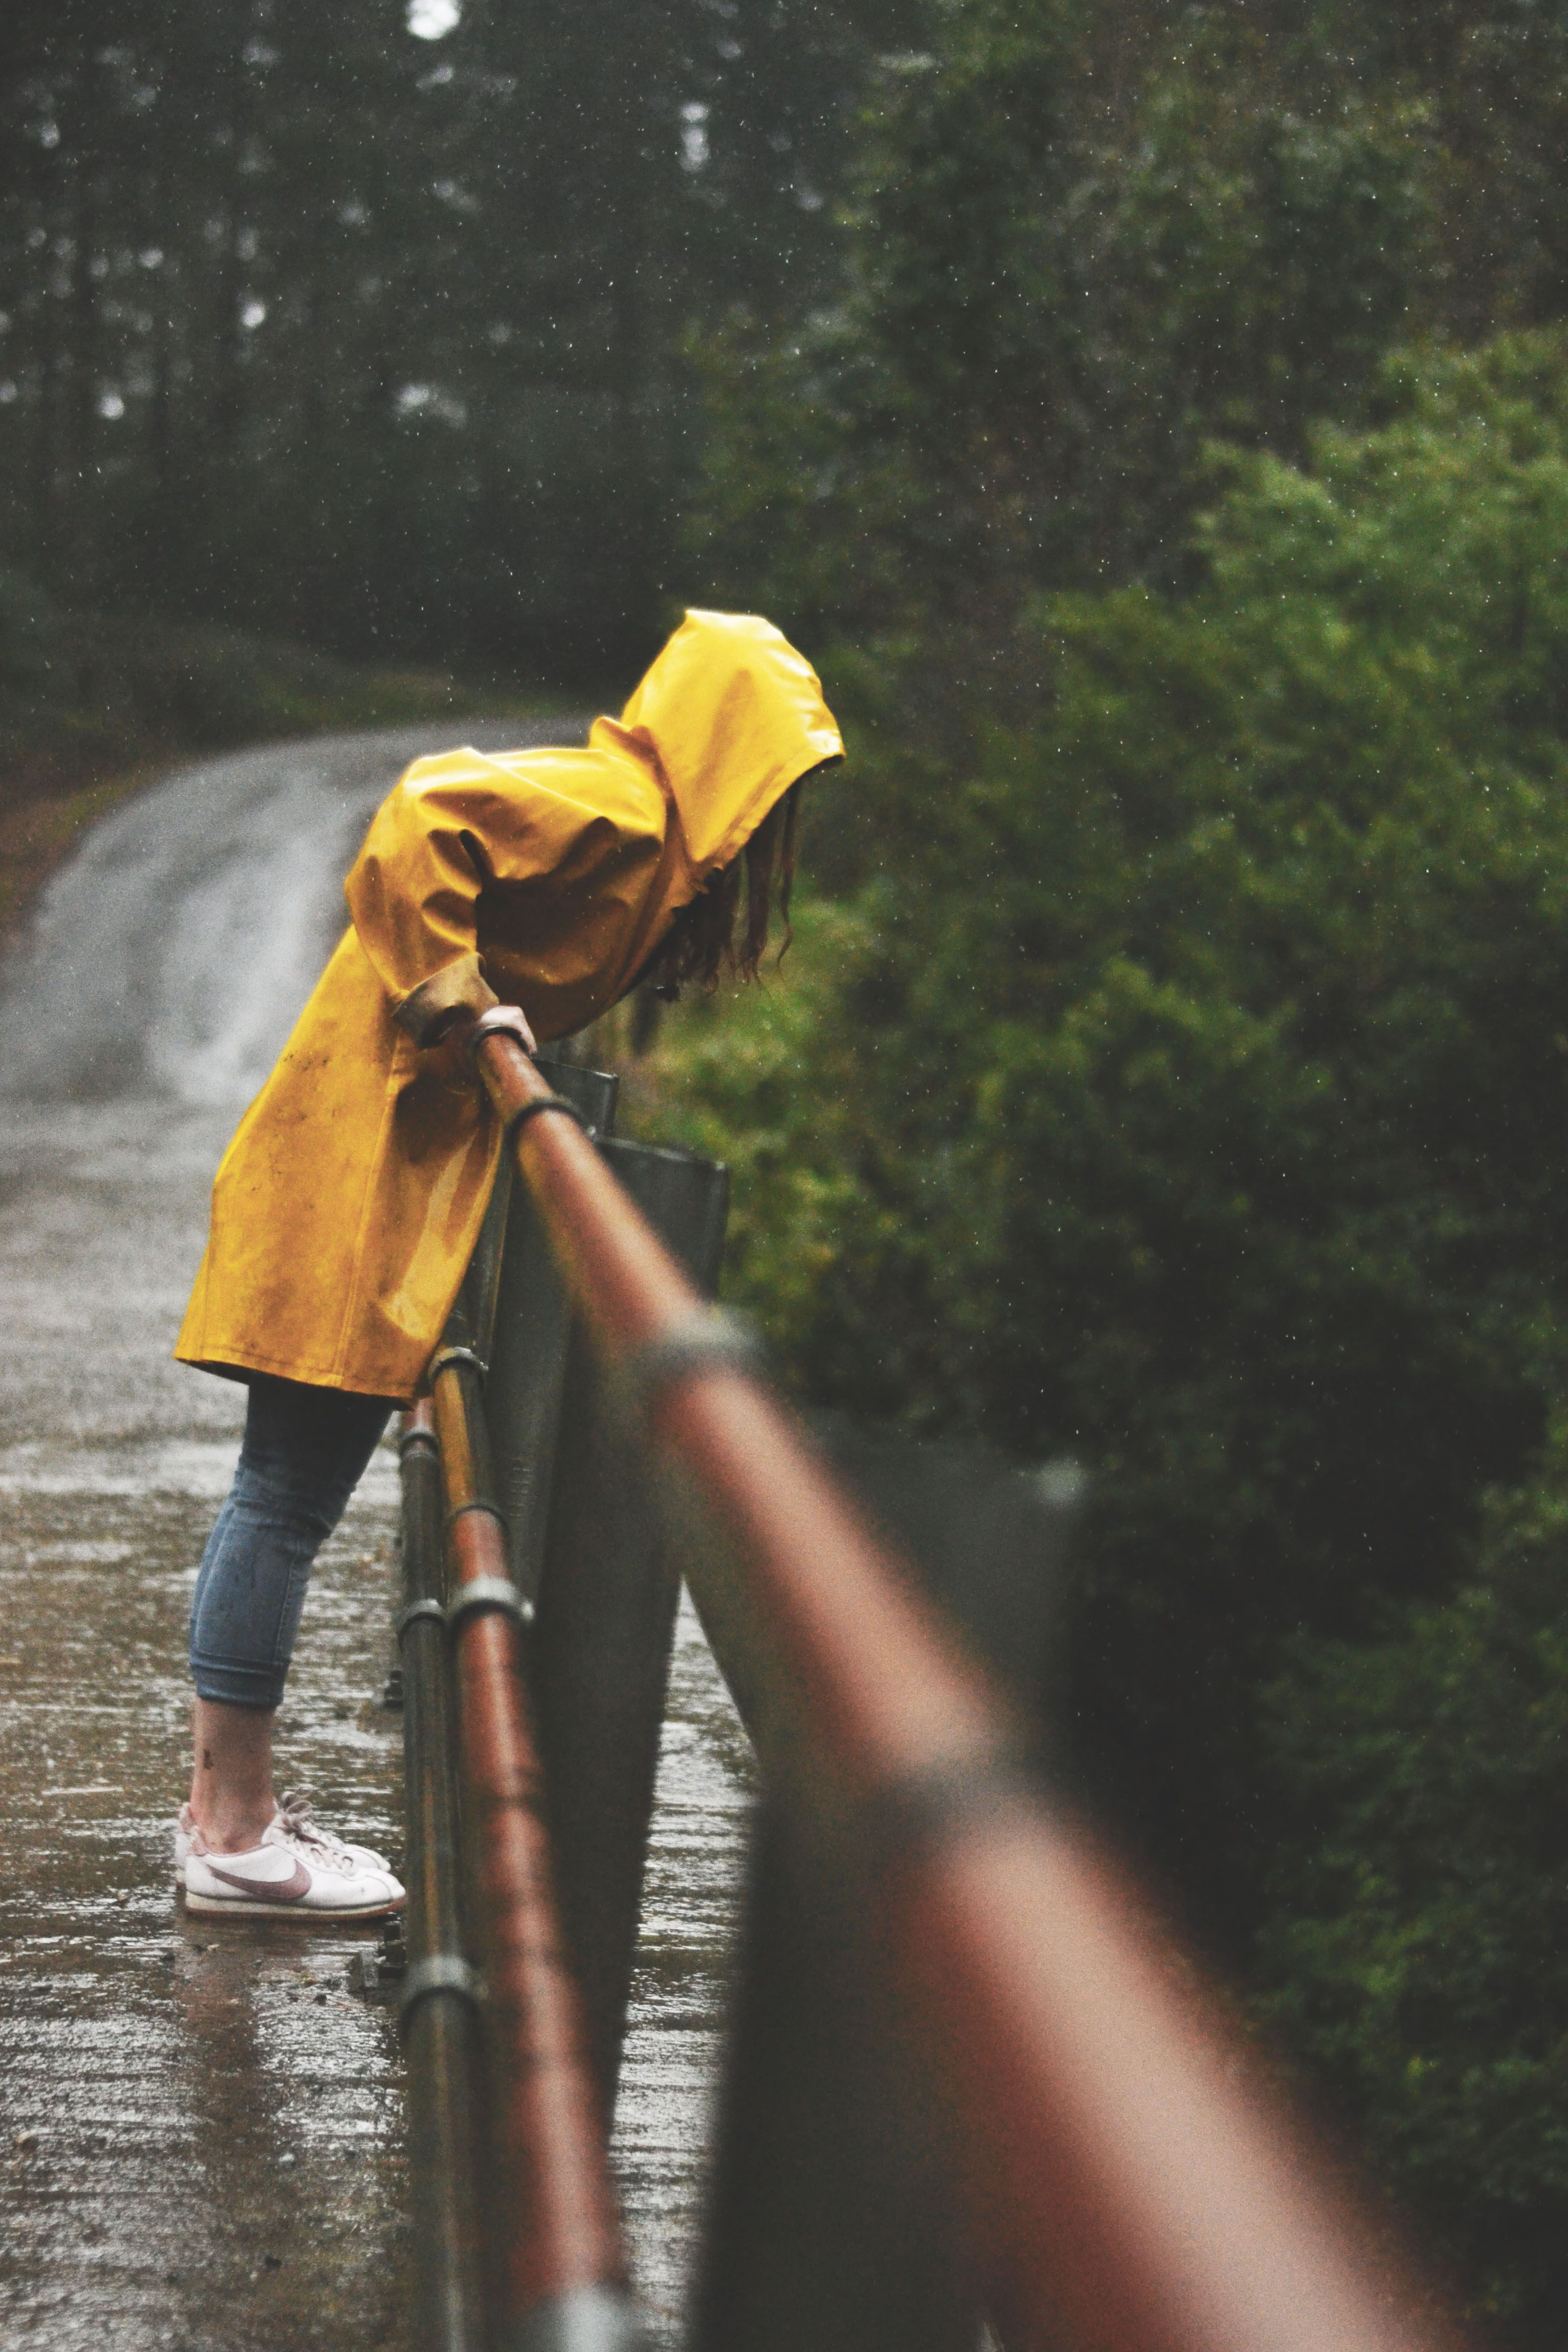 yellow raincoat in the forest photography raining | Forest photography, Photography poses, Rain photography